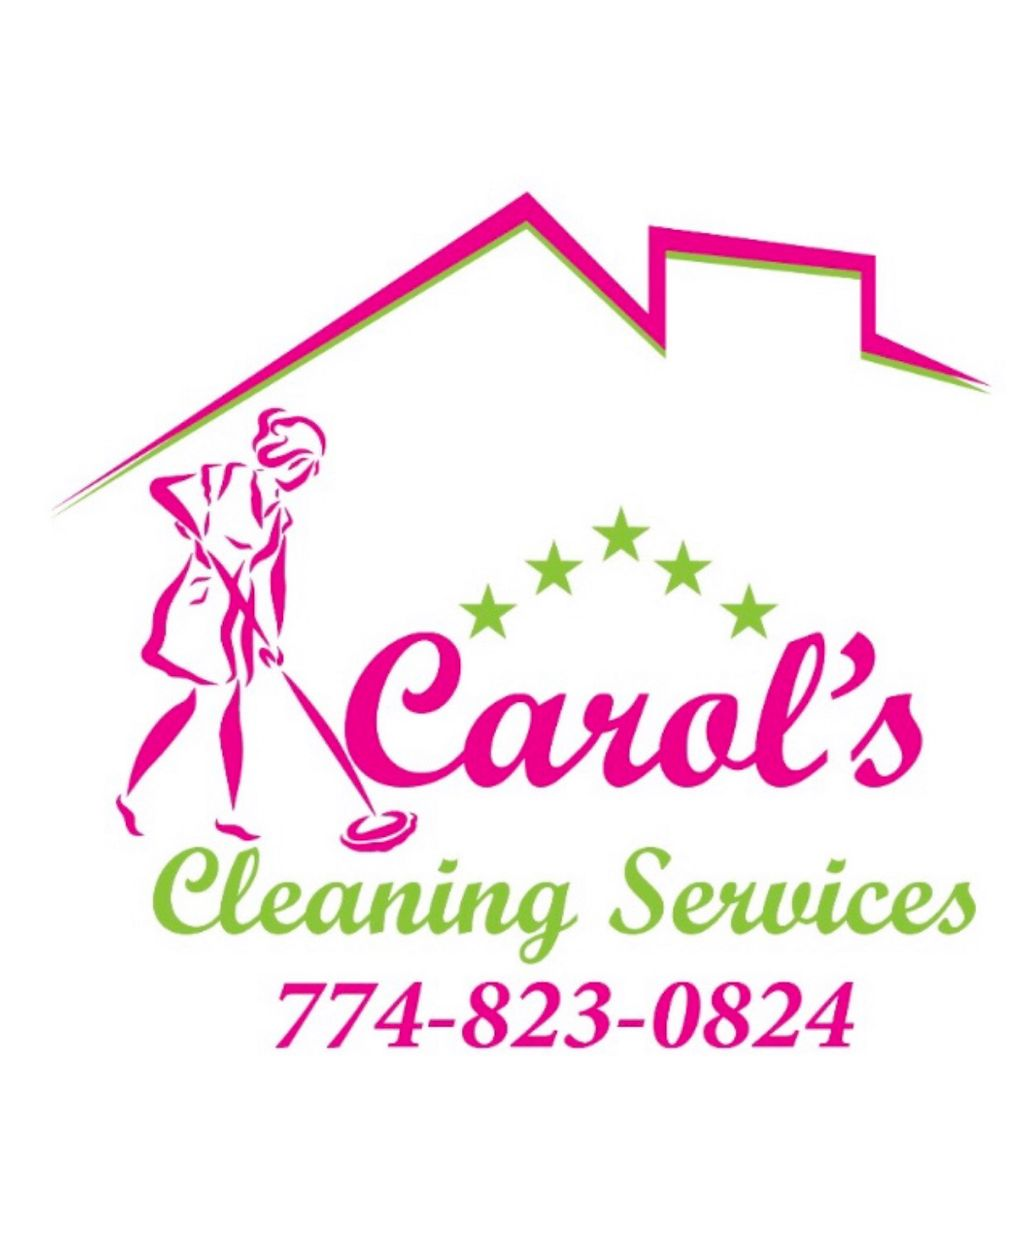 Carol's Cleaning Services